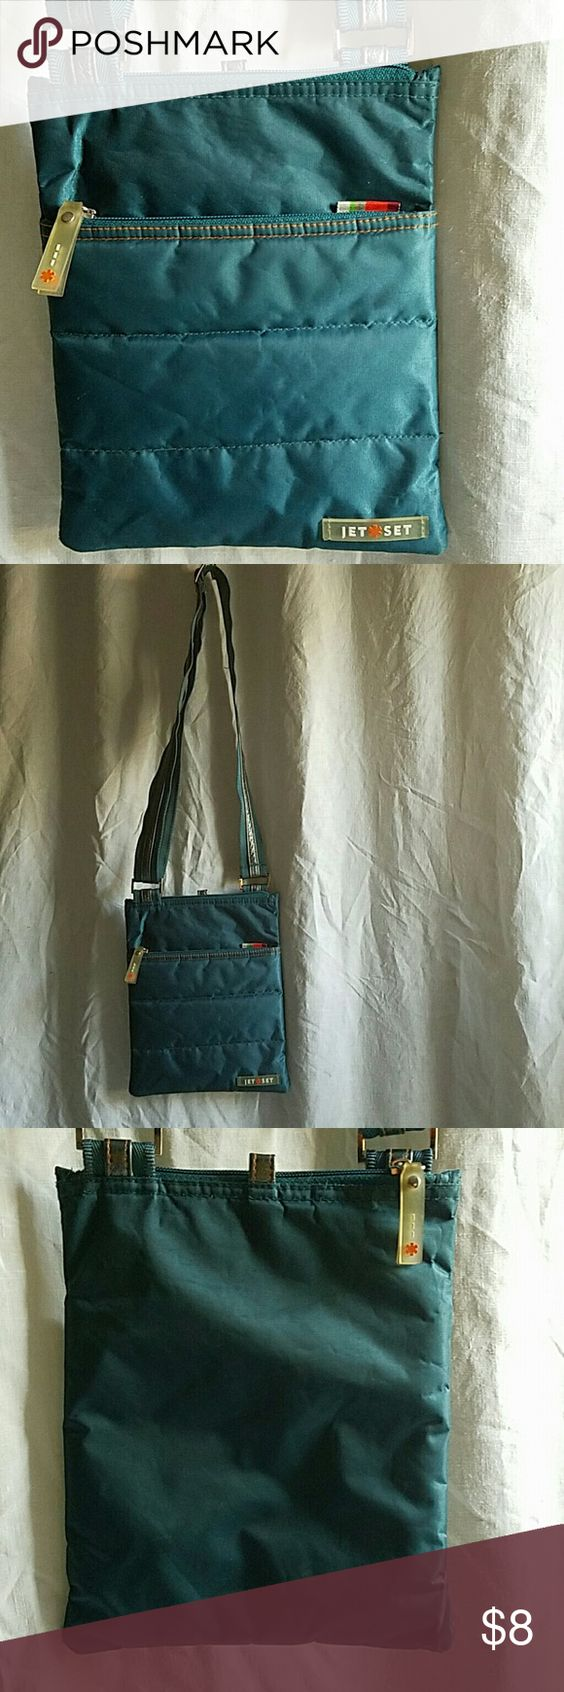 Crossbody Bag in Aqua This lightweight crossbody Bag is perfect to use while traveling.   ??Bundle and save ??Offers welcome thru the '?ffer' button  ??Fast Shipping  ??No trading JetSet Bags Crossbody Bags